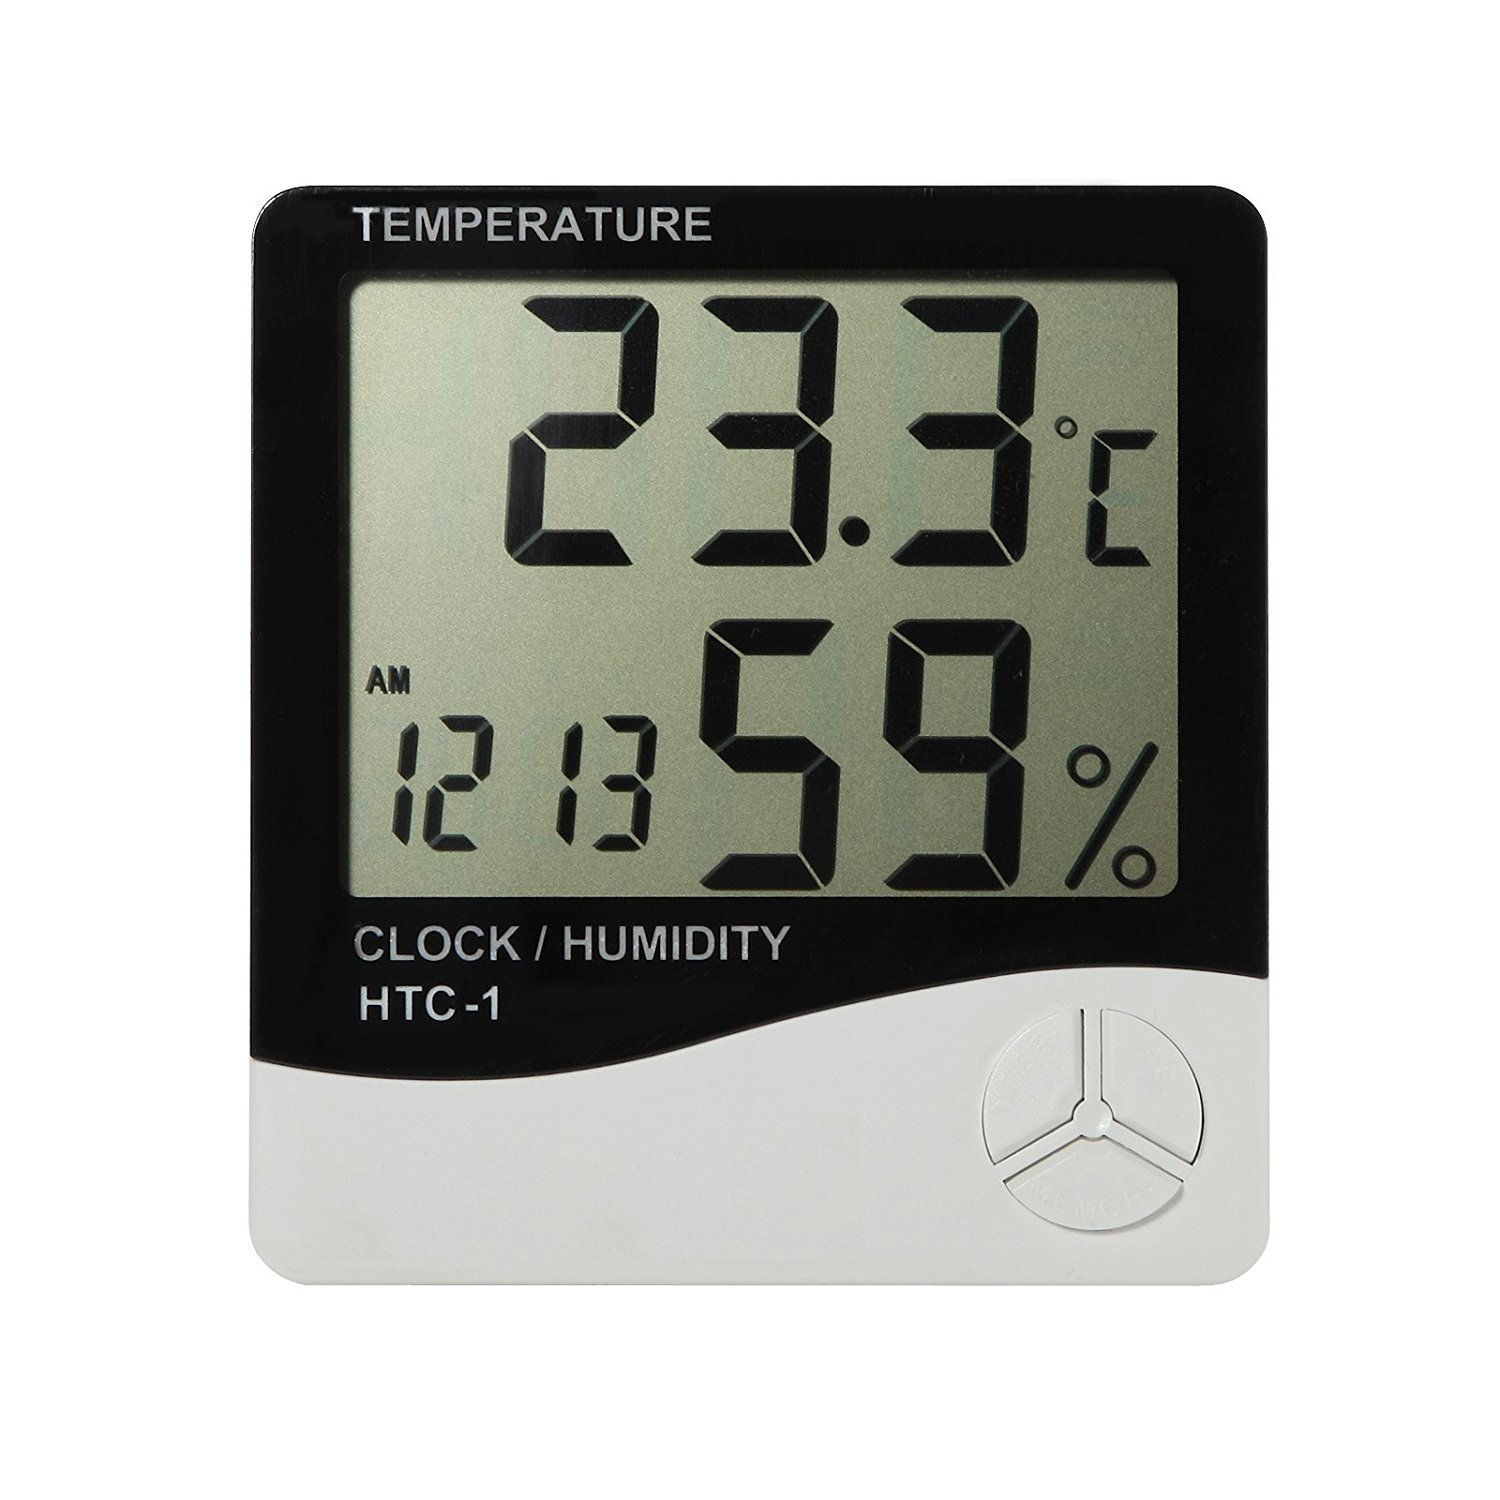 Hydro Plus Hydroponic Hygrometer Thermometer Temperature Humidity Gauge for Indoor Plant Growing